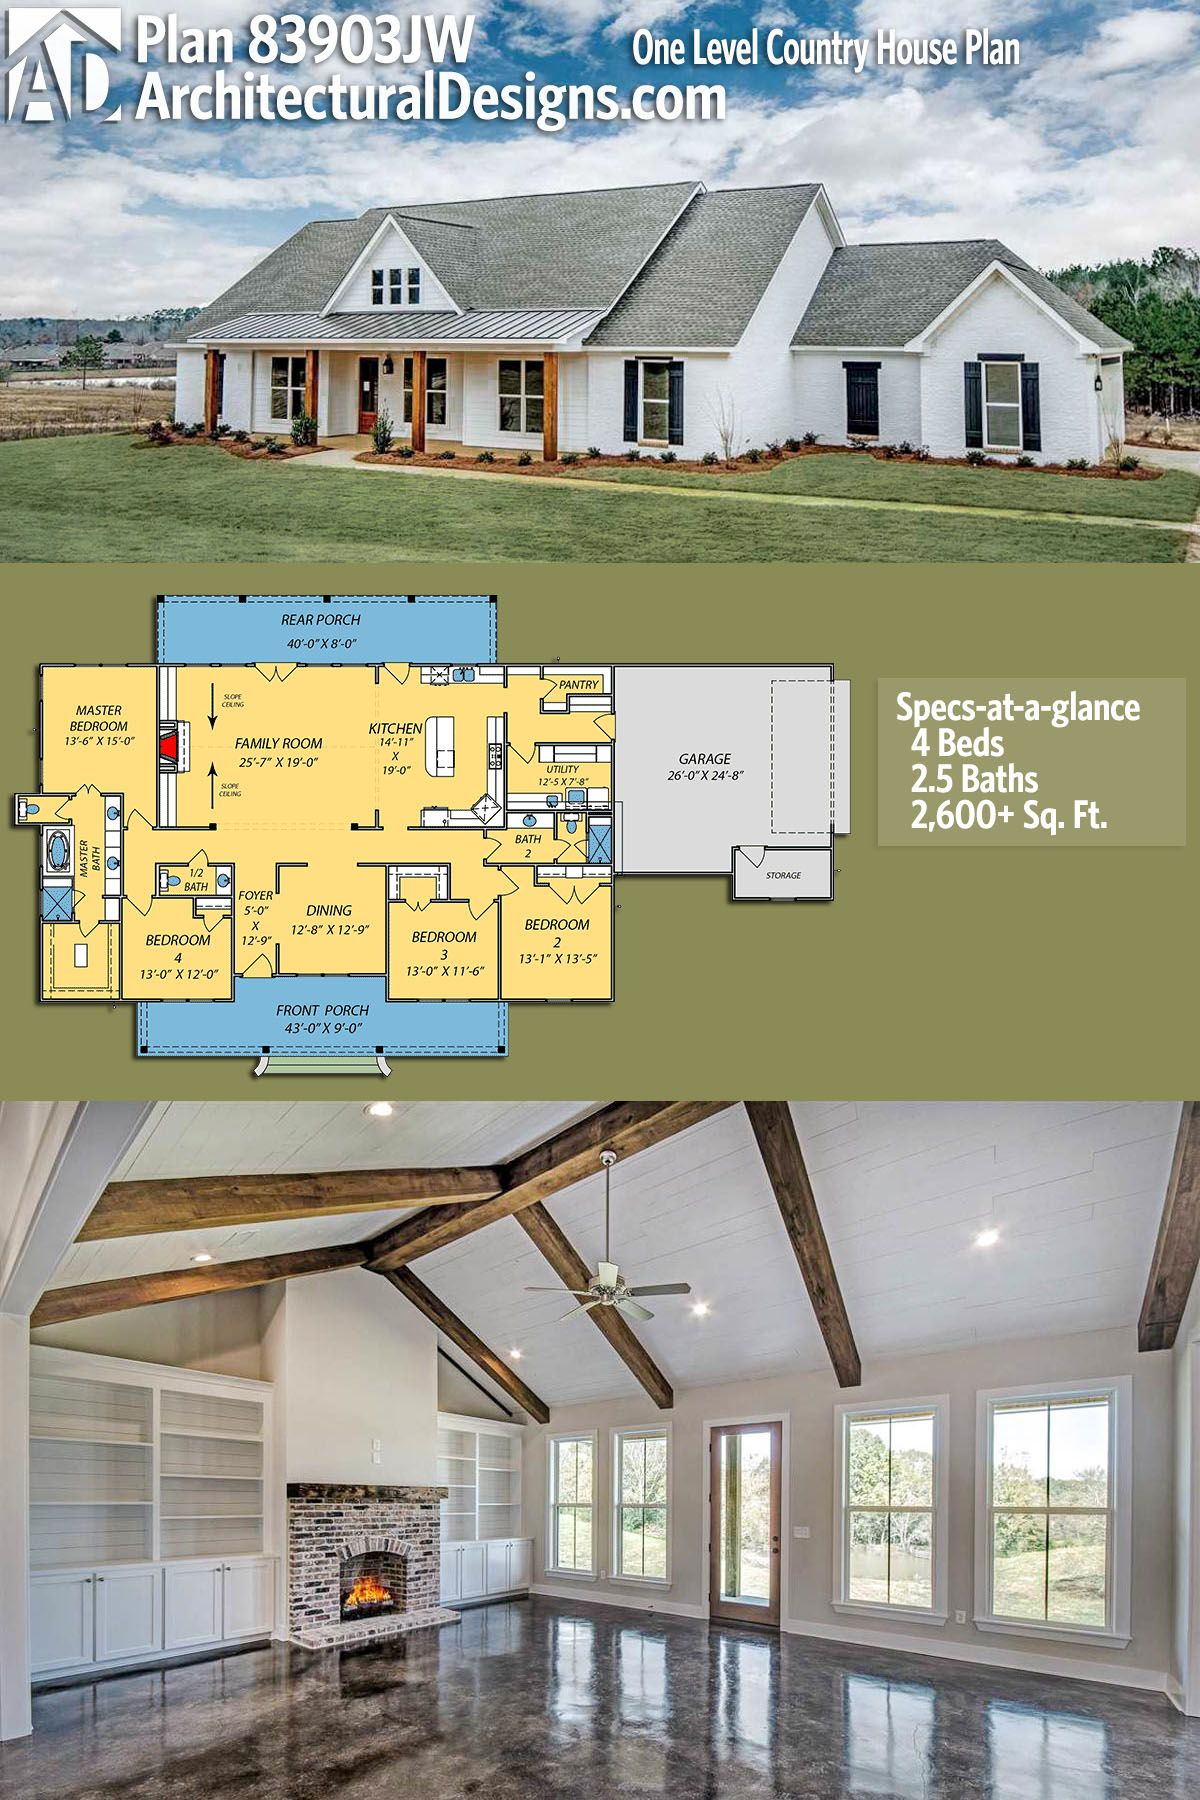 Plan 83903JW: One Level Country House Plan | Grundrisse, Bauernhaus ...